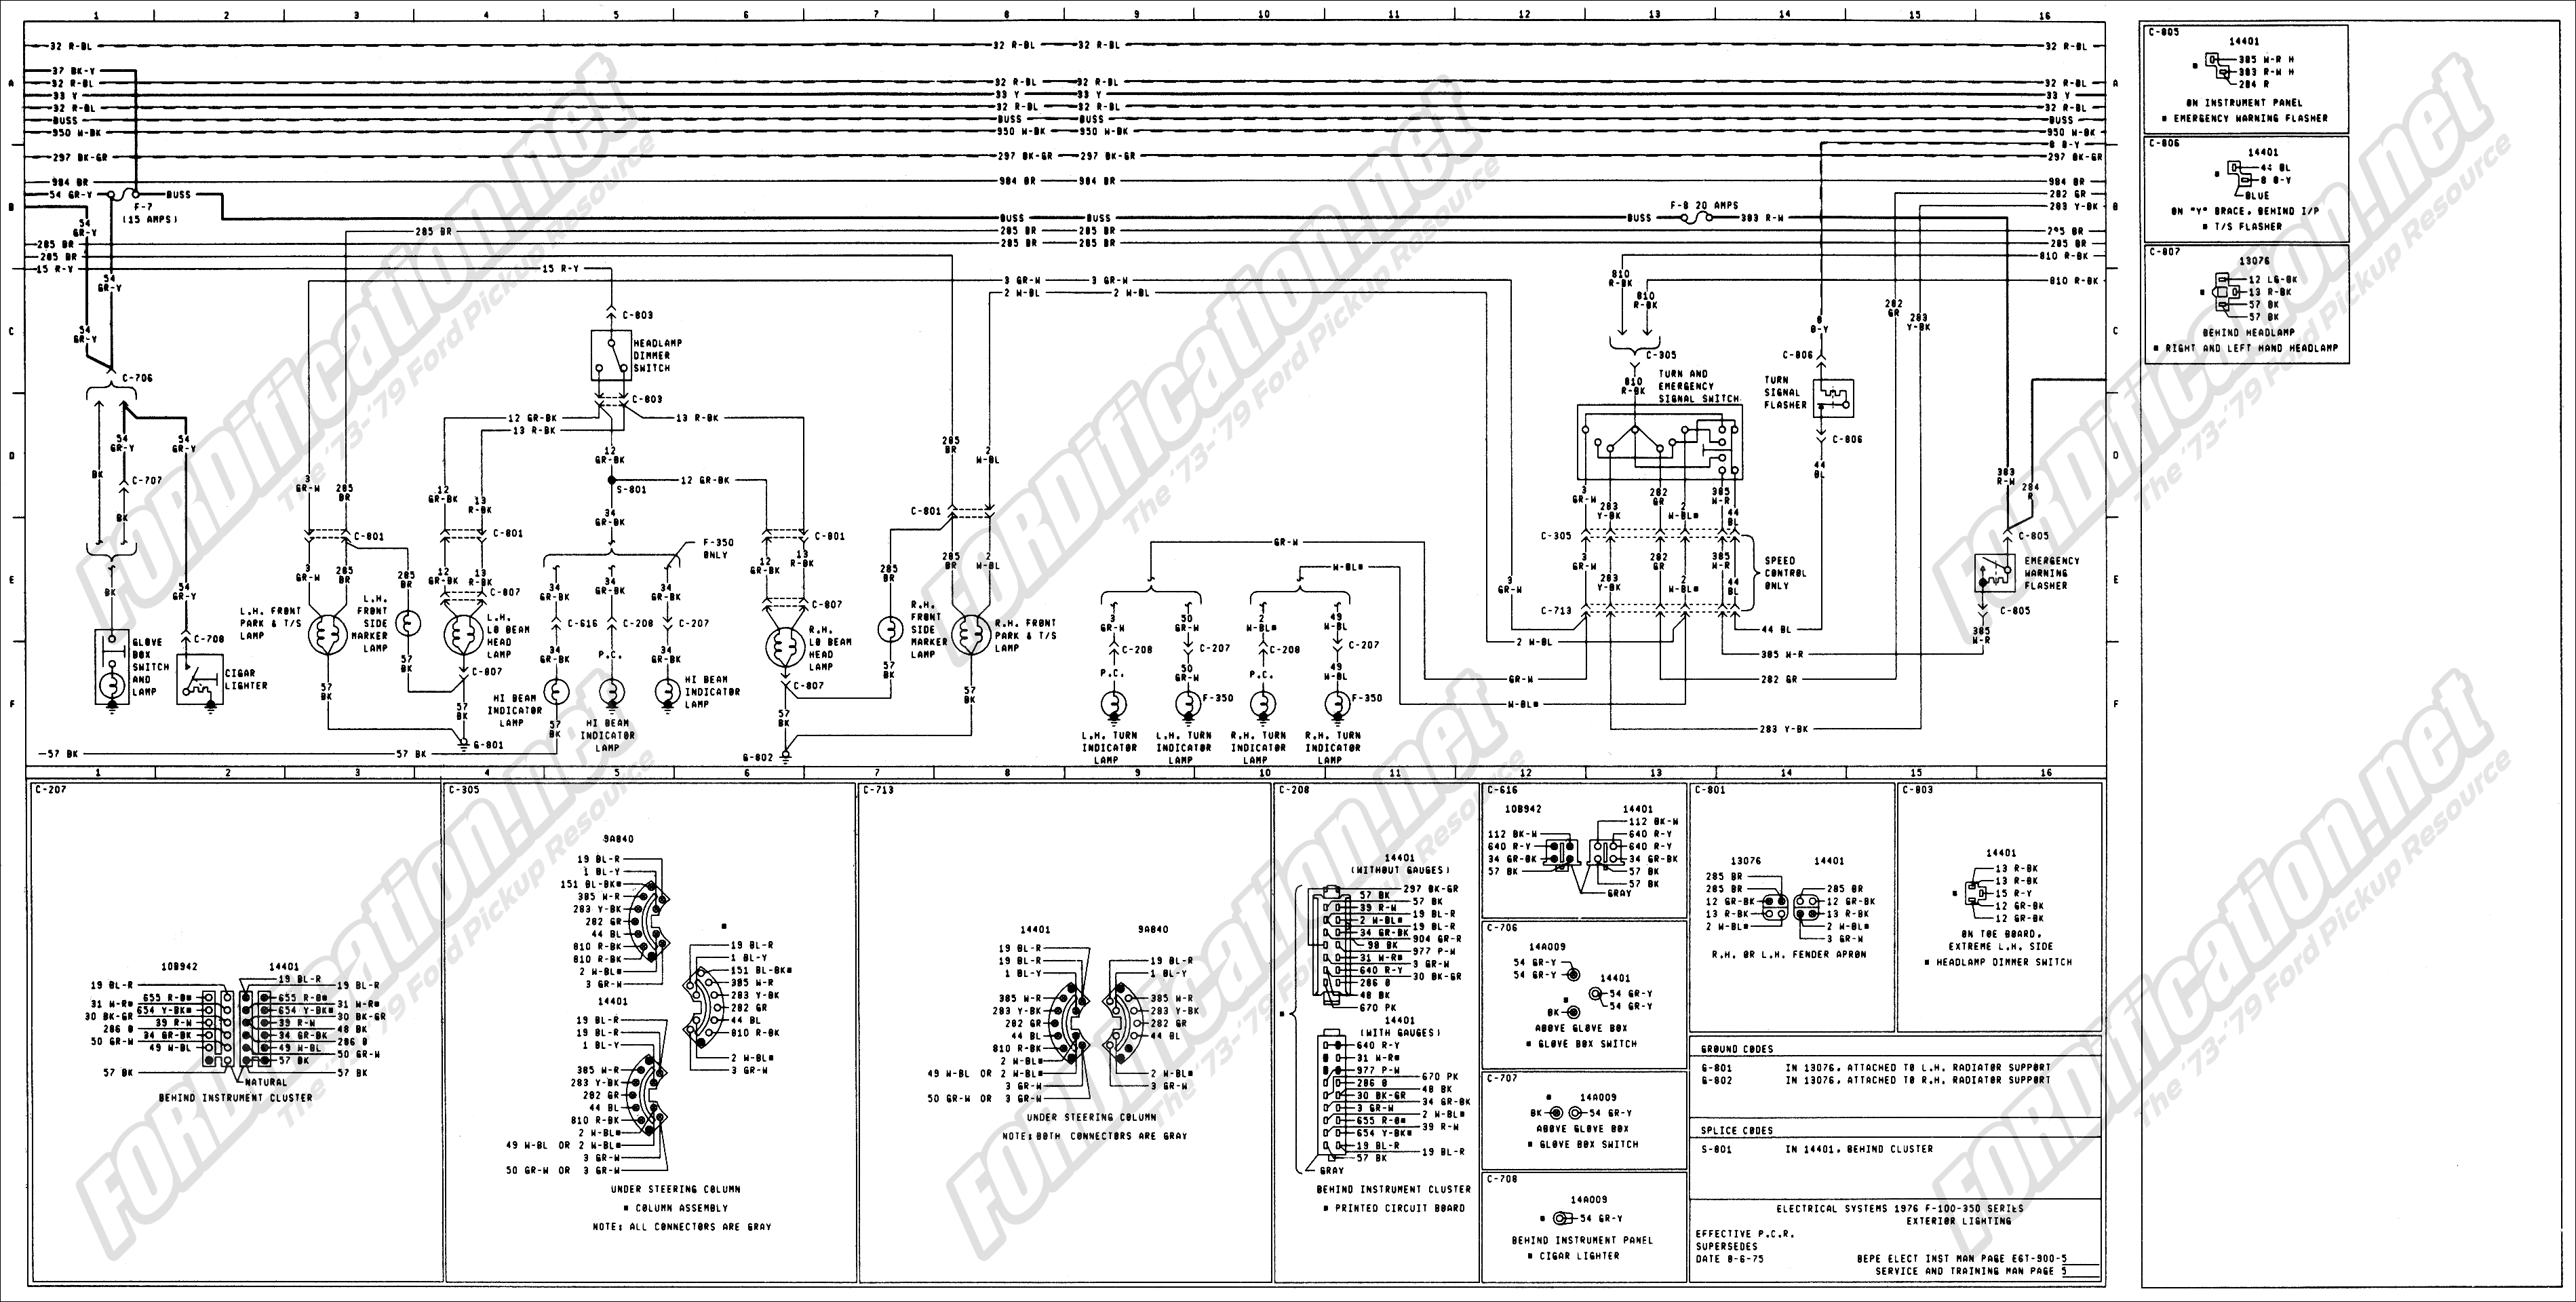 1976 ford ignition wiring diagram wiring data rh unroutine co 1980 Ford F-250 1976 Ford F-250